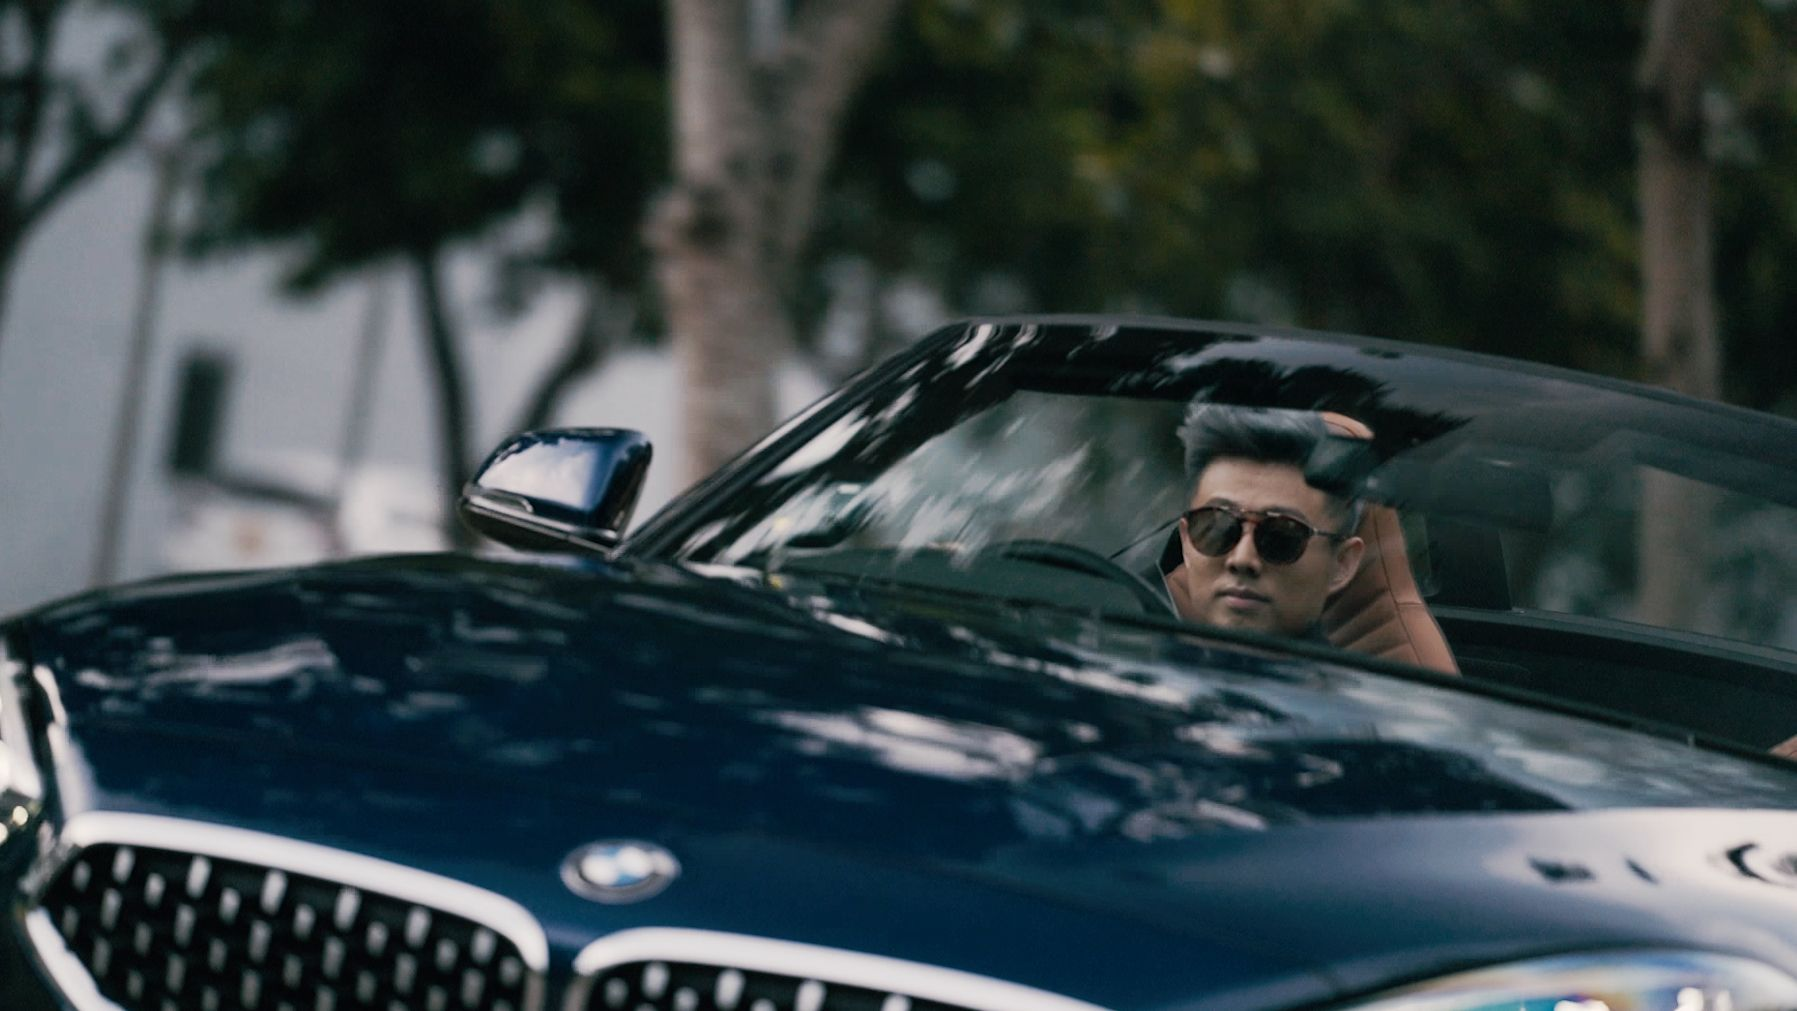 Roy Fong And Jessica Nasr Find Freedom In The New BMW Z4 Roadster